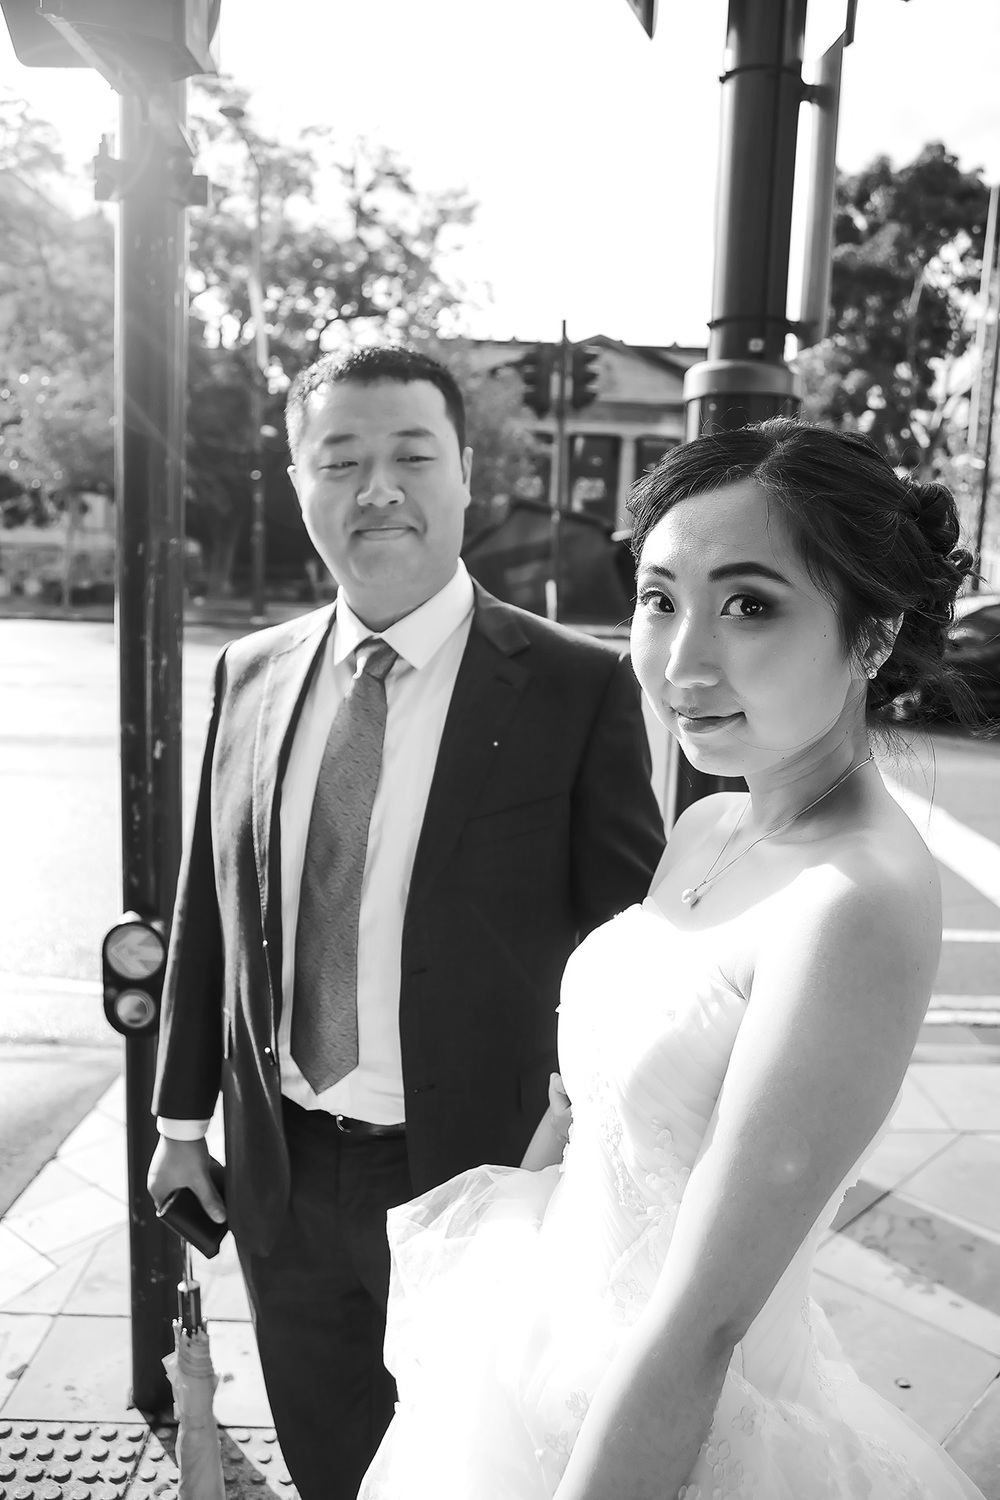 Adelaide City Black and White Wedding Portrait